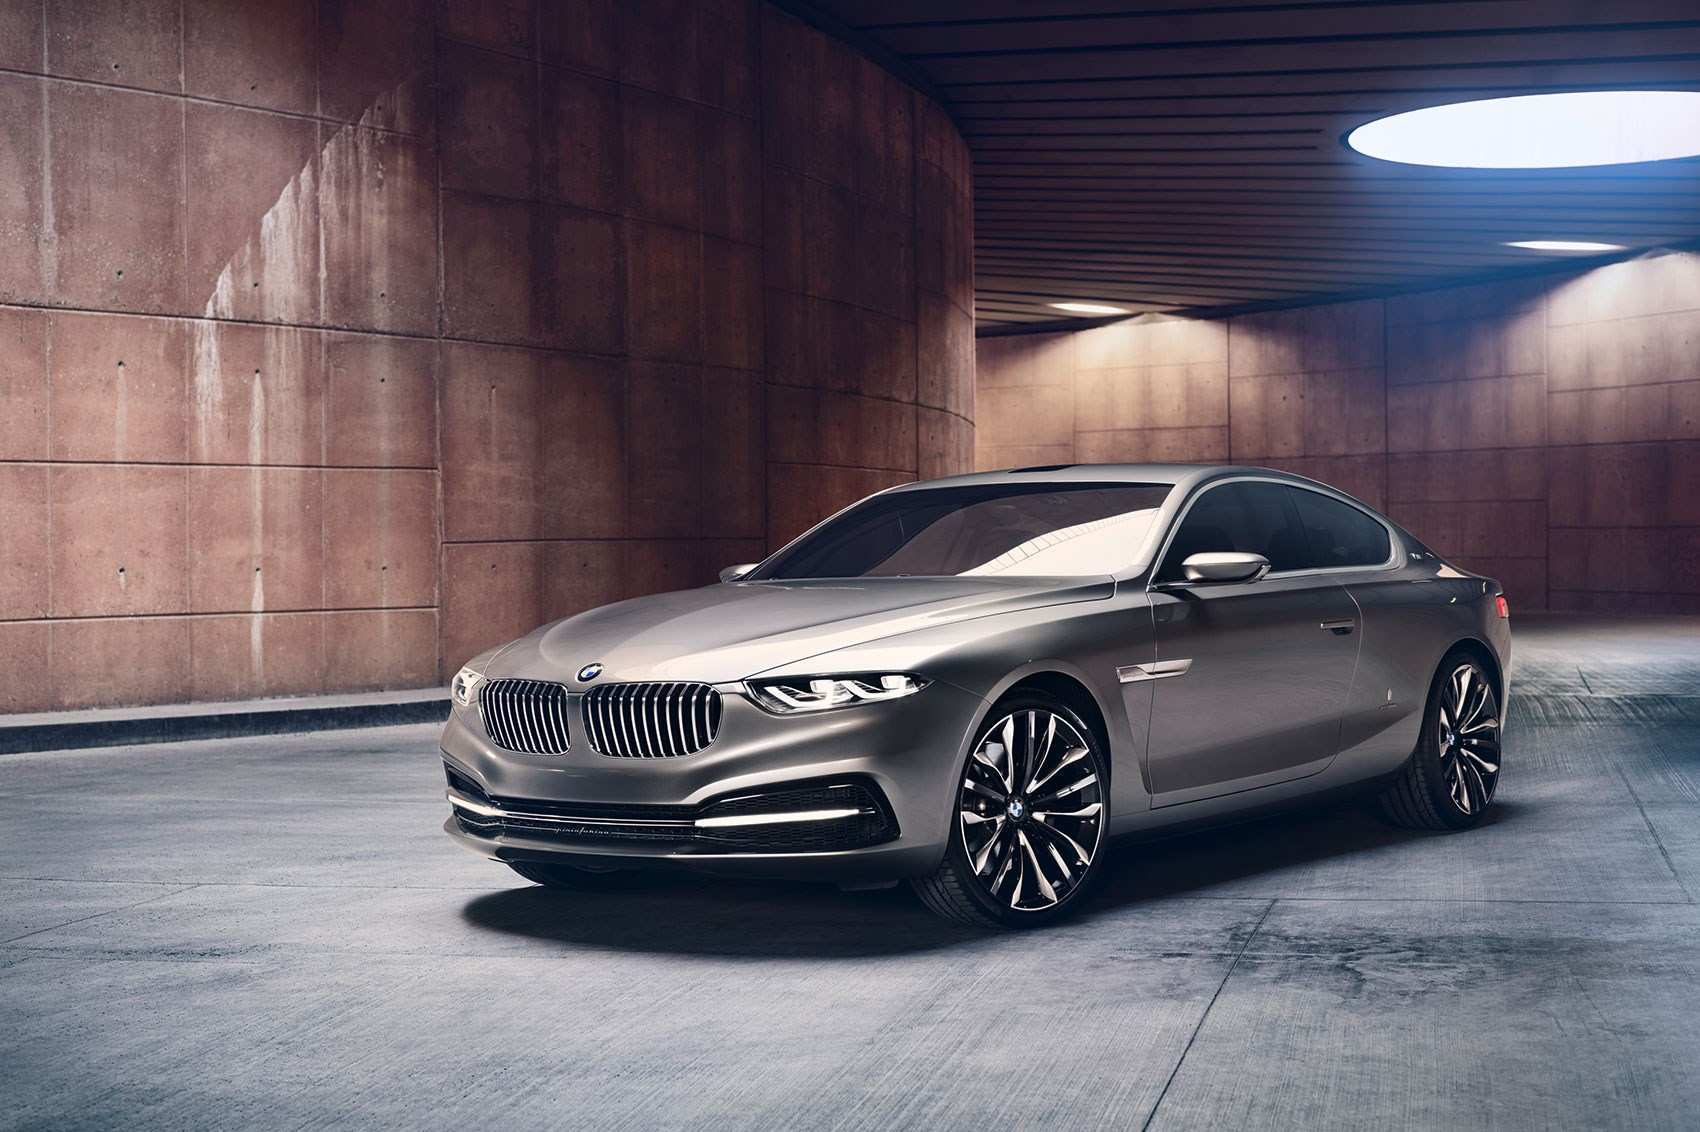 42 New 2020 Bmw 9 Serisi Review with 2020 Bmw 9 Serisi